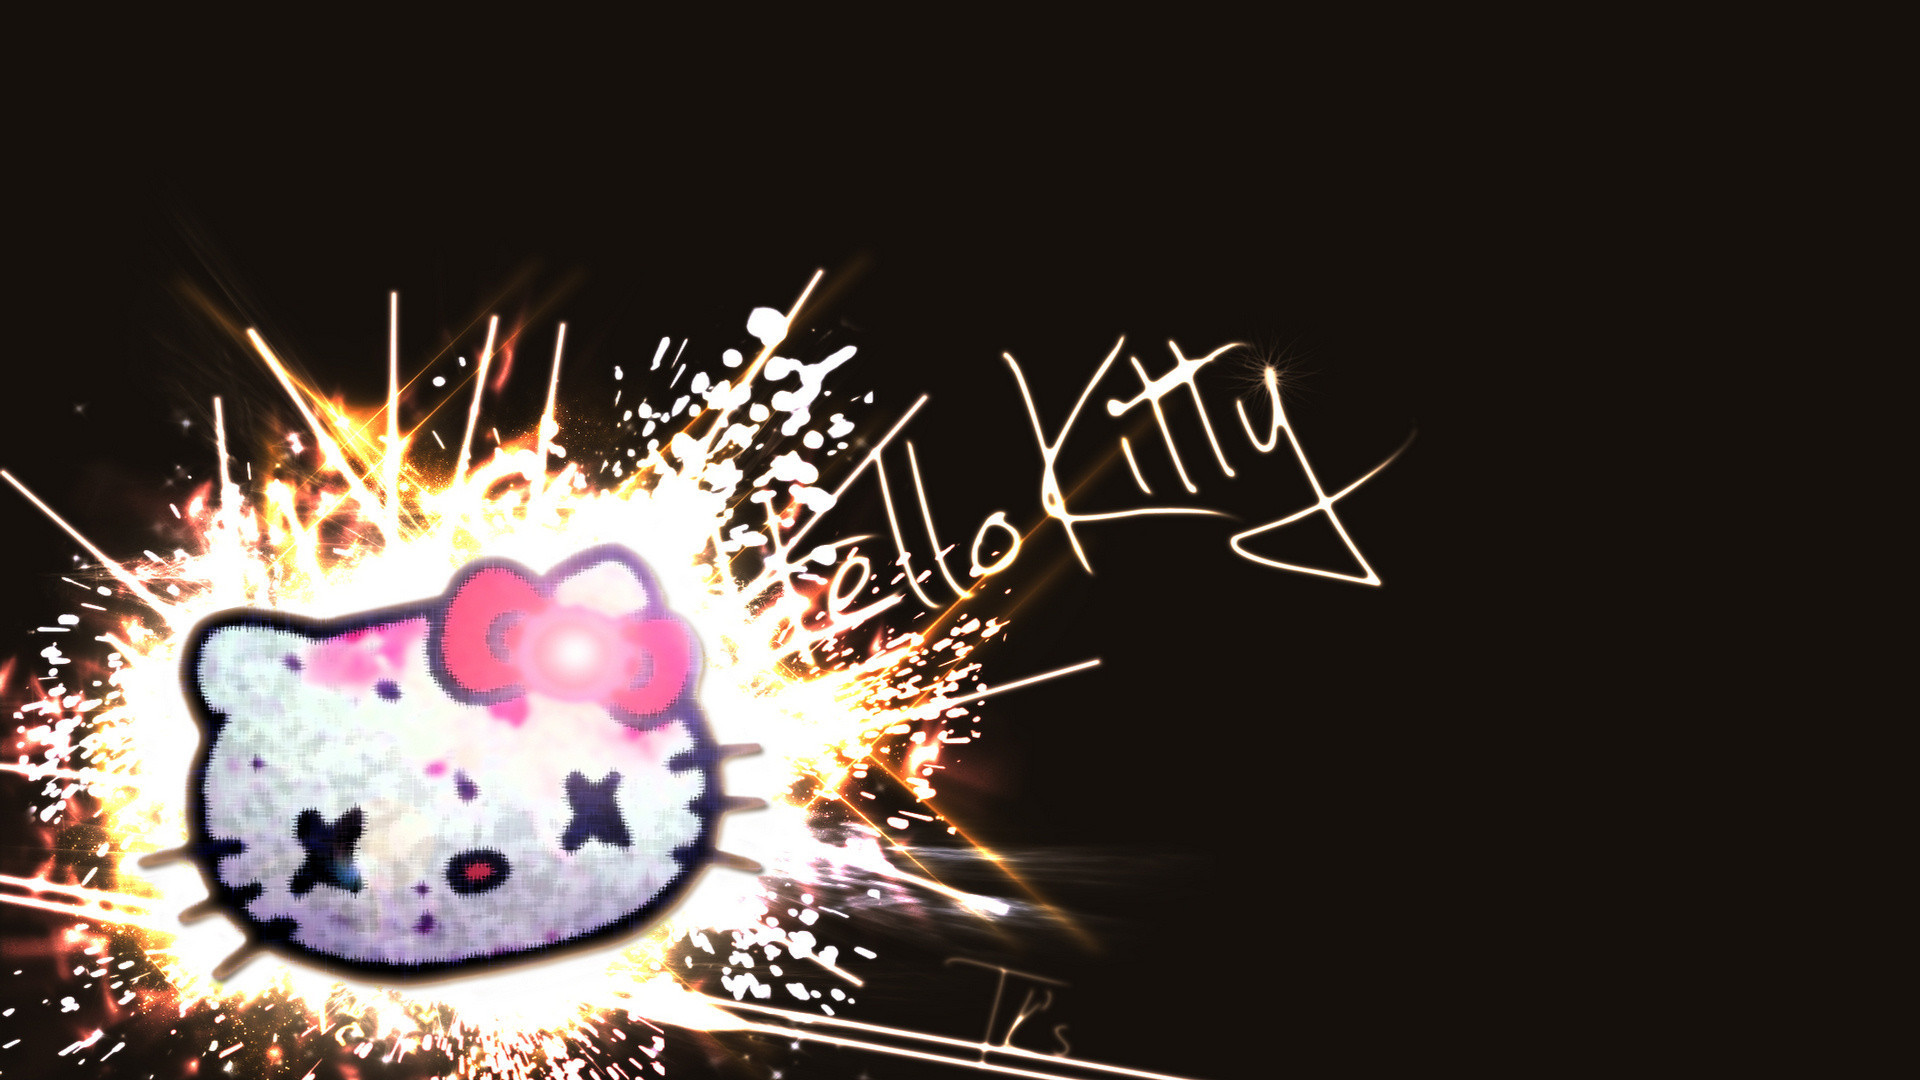 Cute Ipod Wallpapers For Walls Black Hello Kitty Background 183 ①